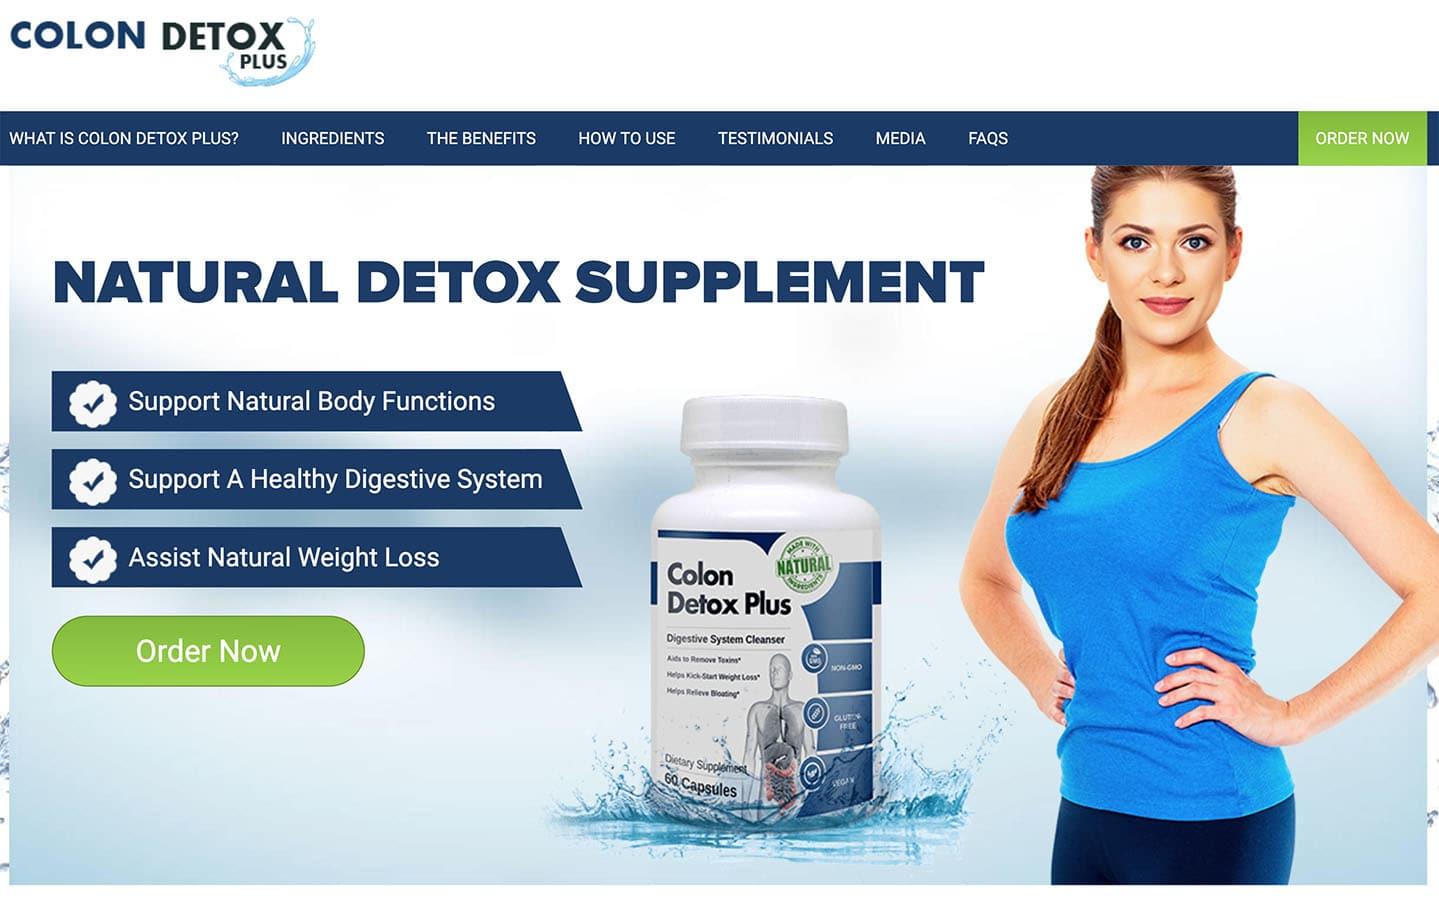 colon detox plus website